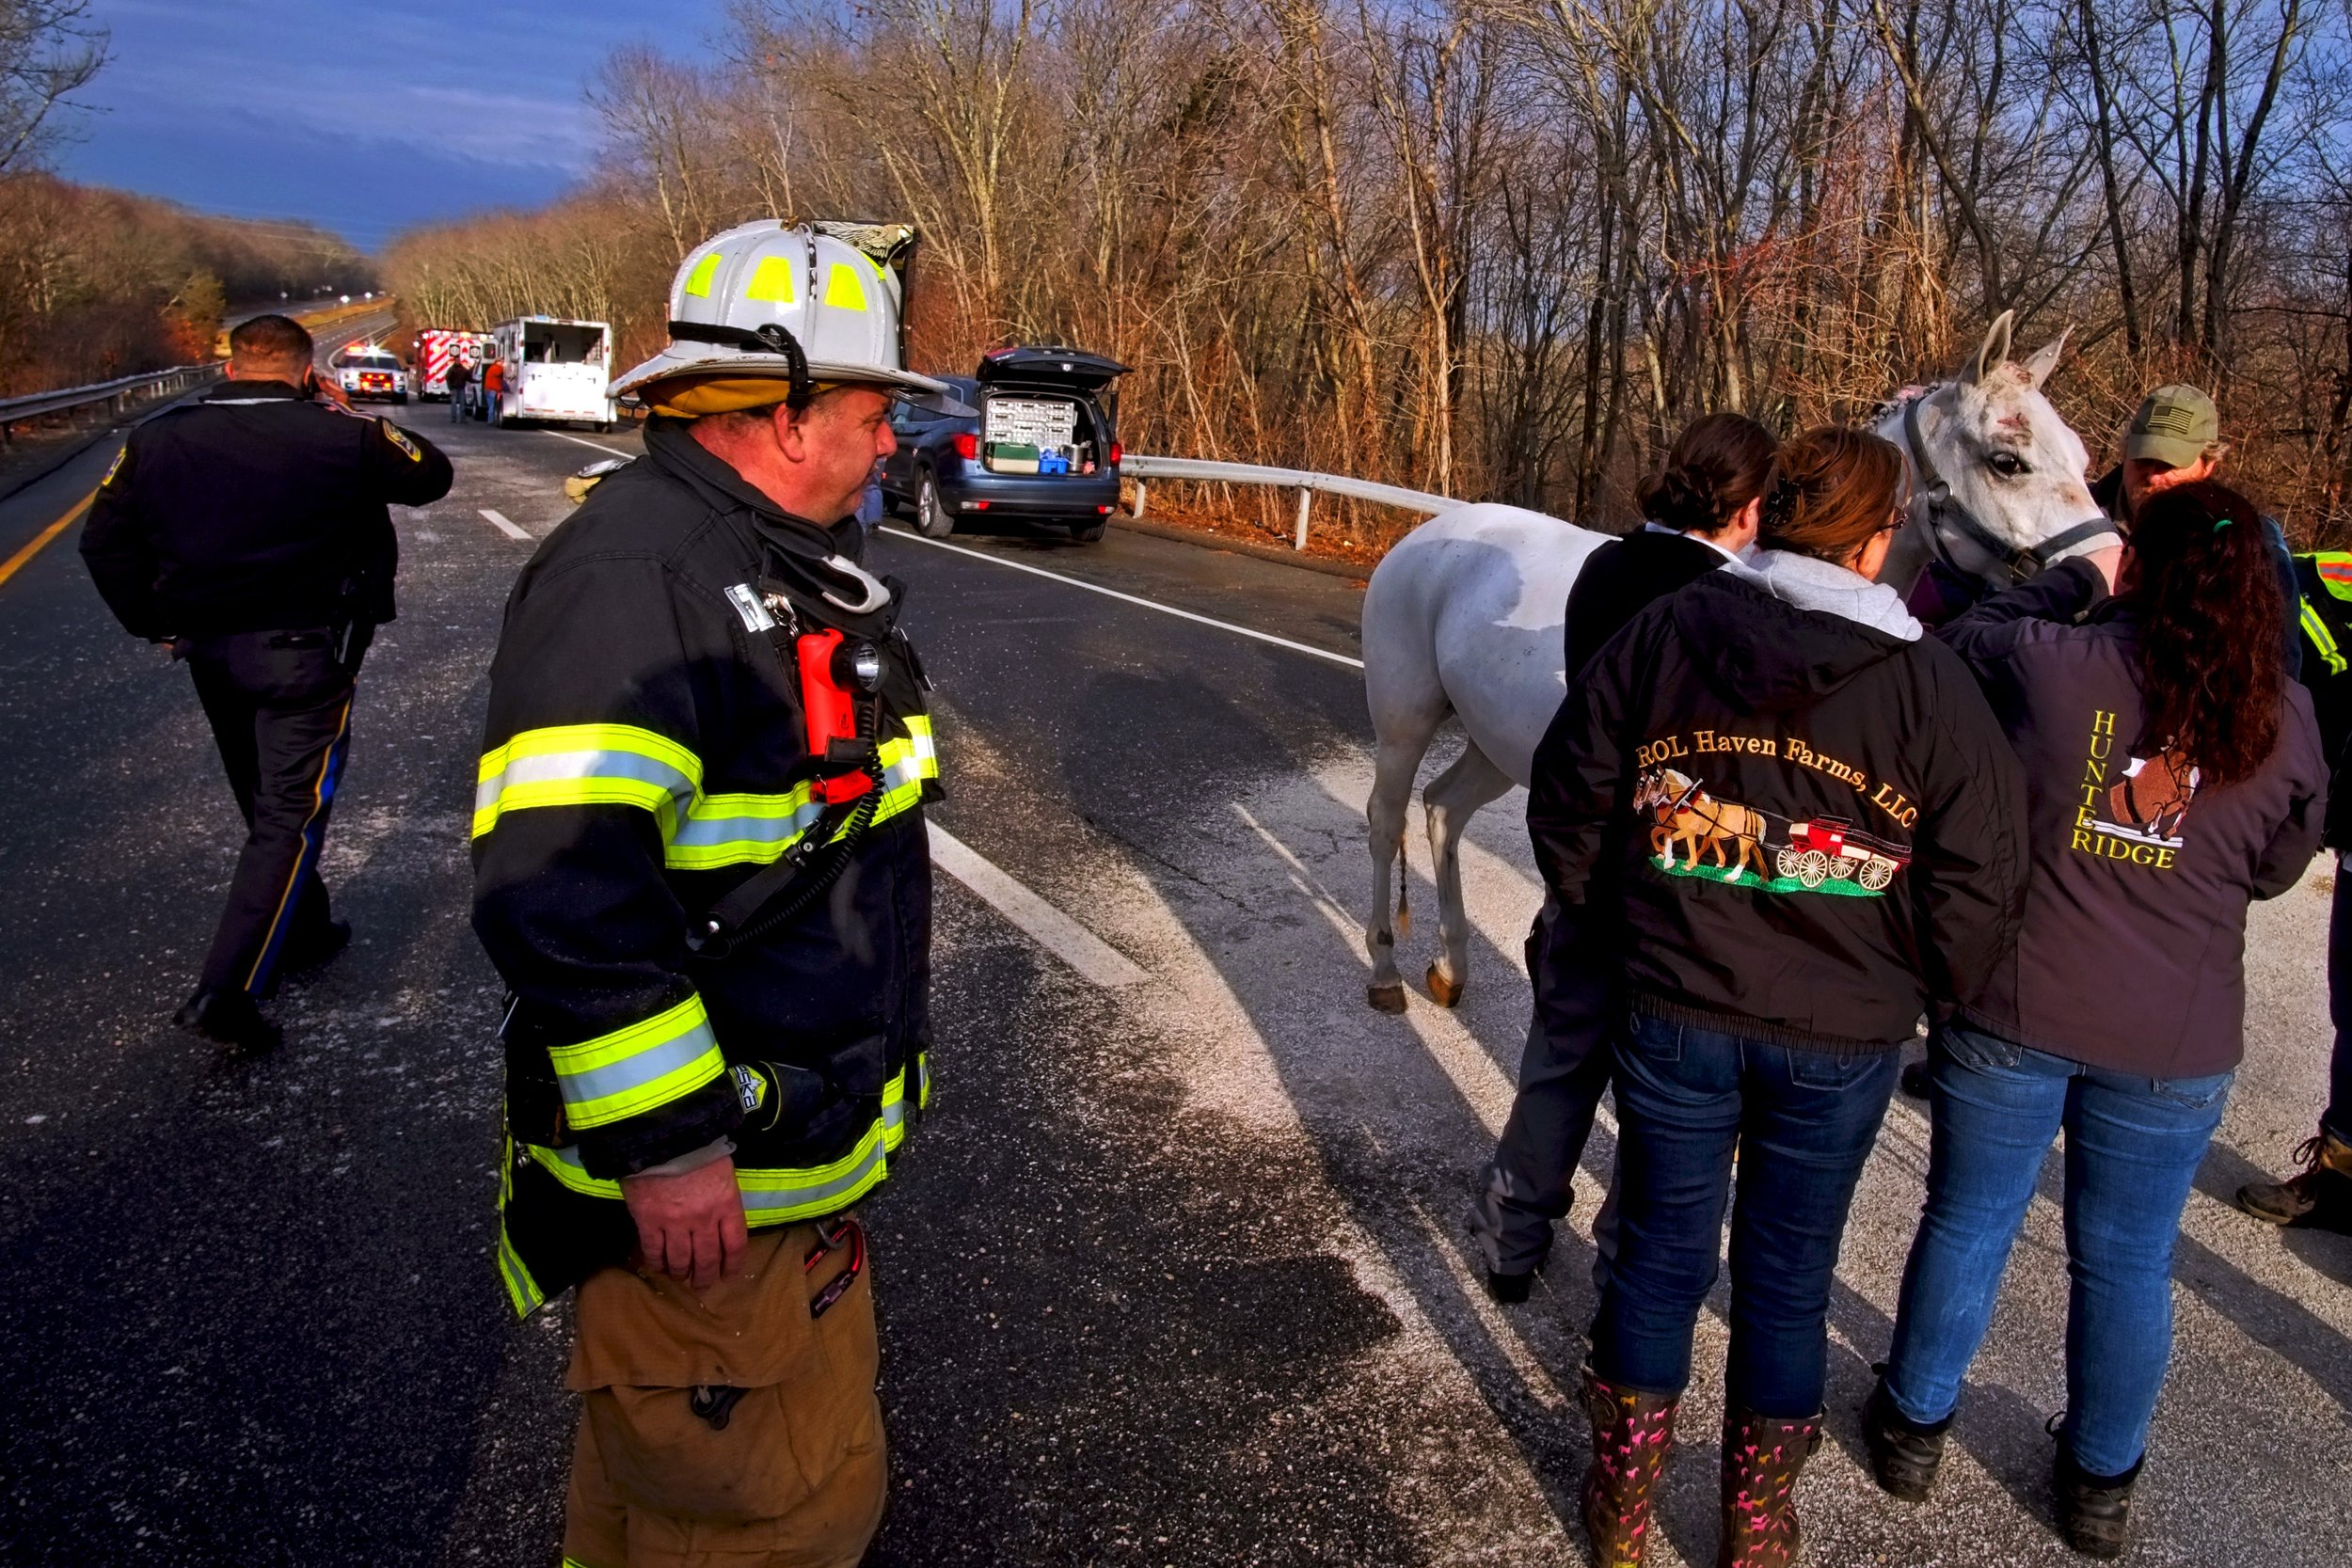 20190106_Waterford_Cohanzie_Quaker_Hill_Horse_Trailer_Rescue_Rt32_395_x0275v2.jpg